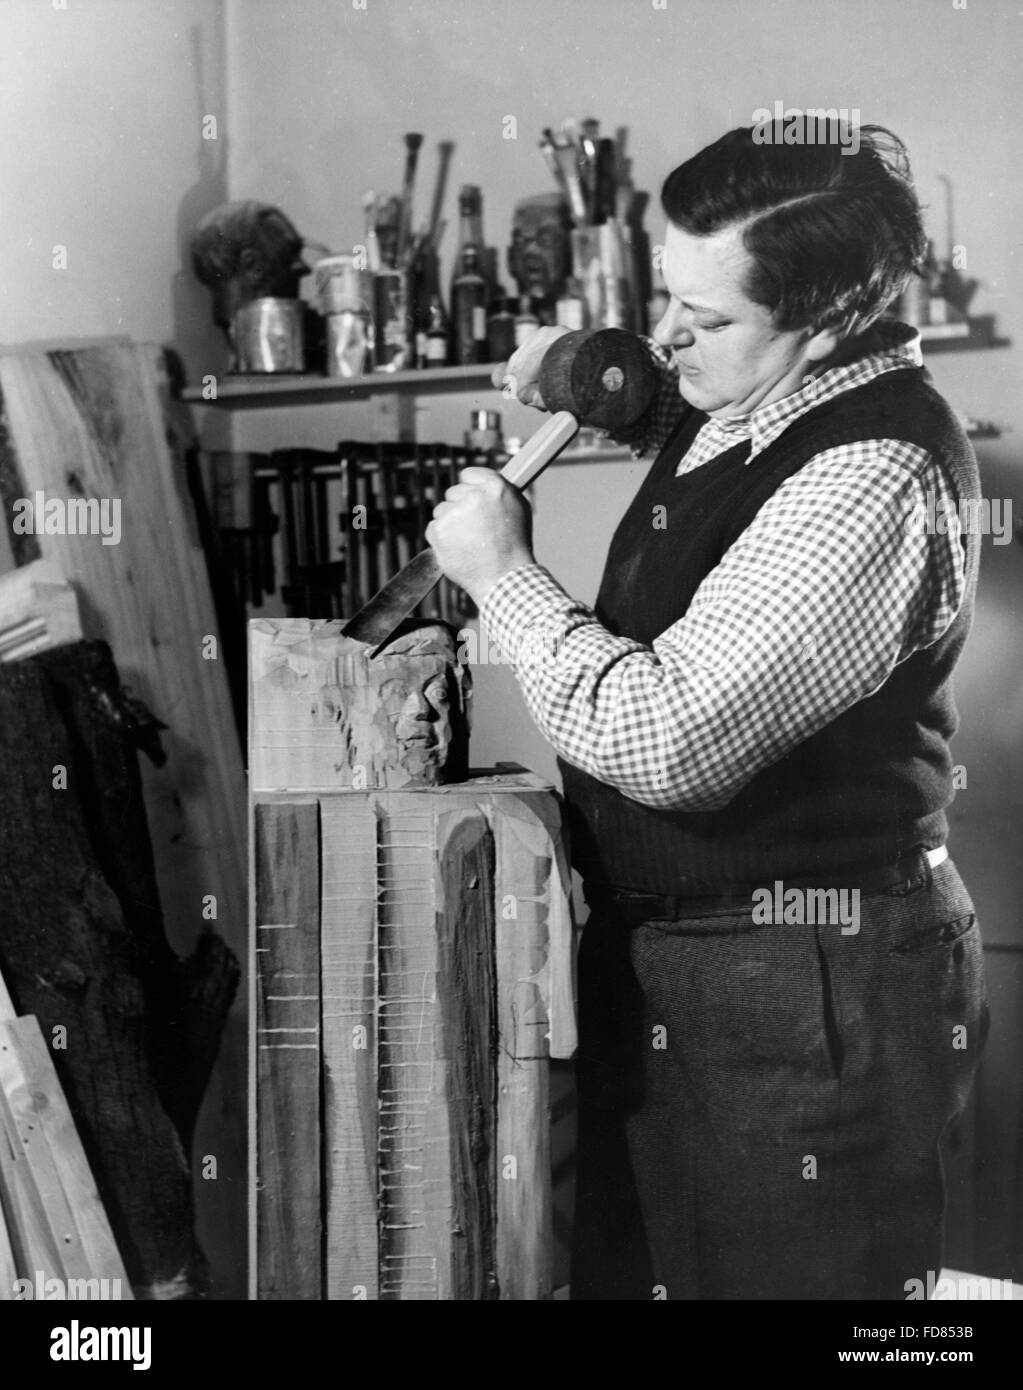 Paul Dahlke works on a wood sculpture, 1941 - Stock Image